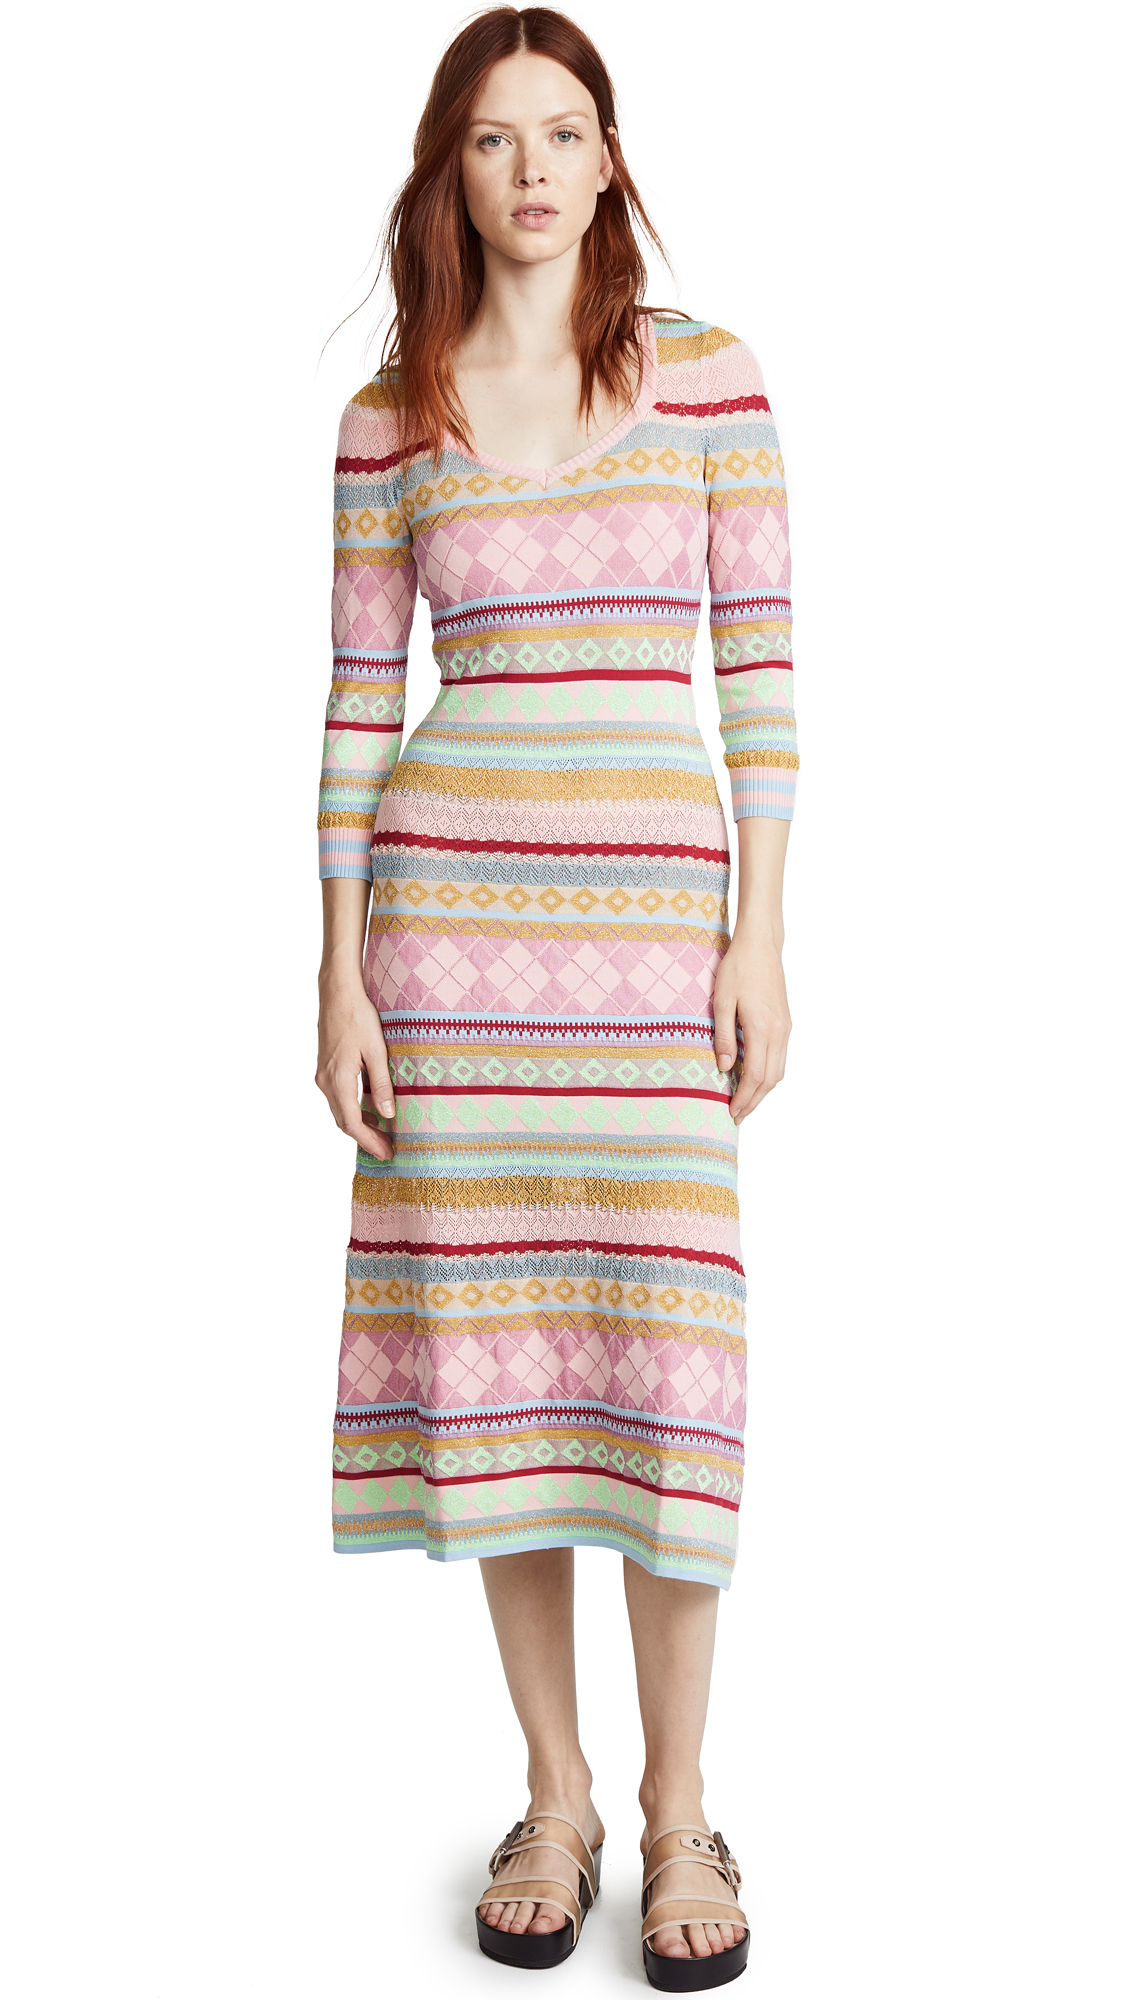 Boutique Moschino Patterned Midi Dress